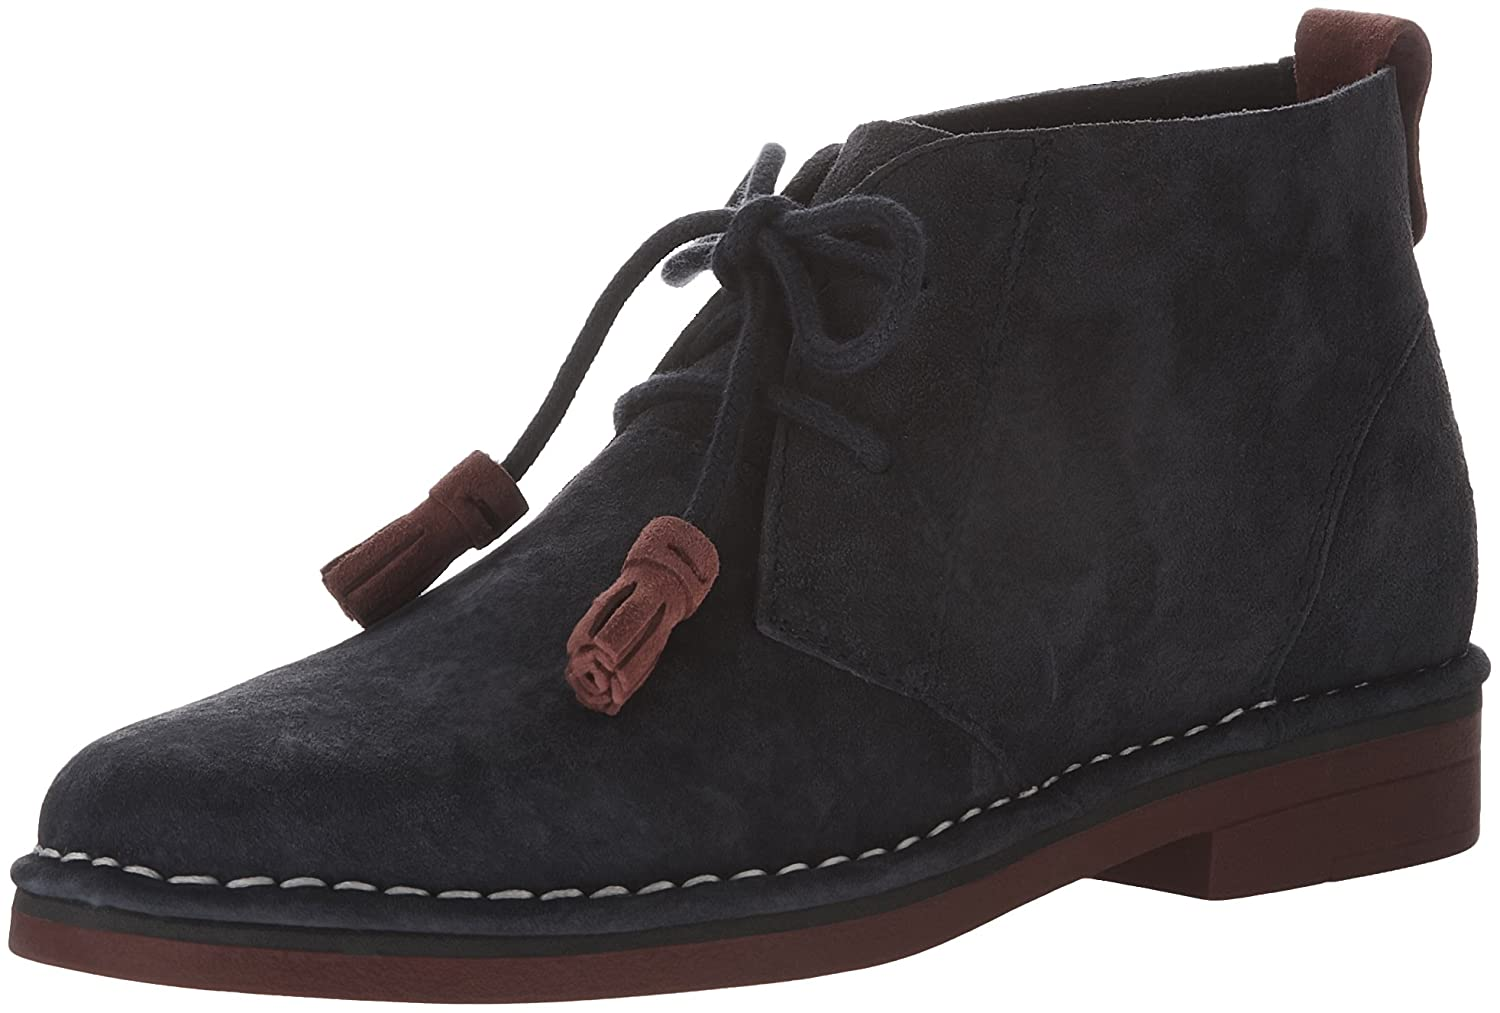 Hush Puppies Women's Cyra Catelyn Boot B019X7SUL6 5.5 B(M) US|Navy Suede/Red